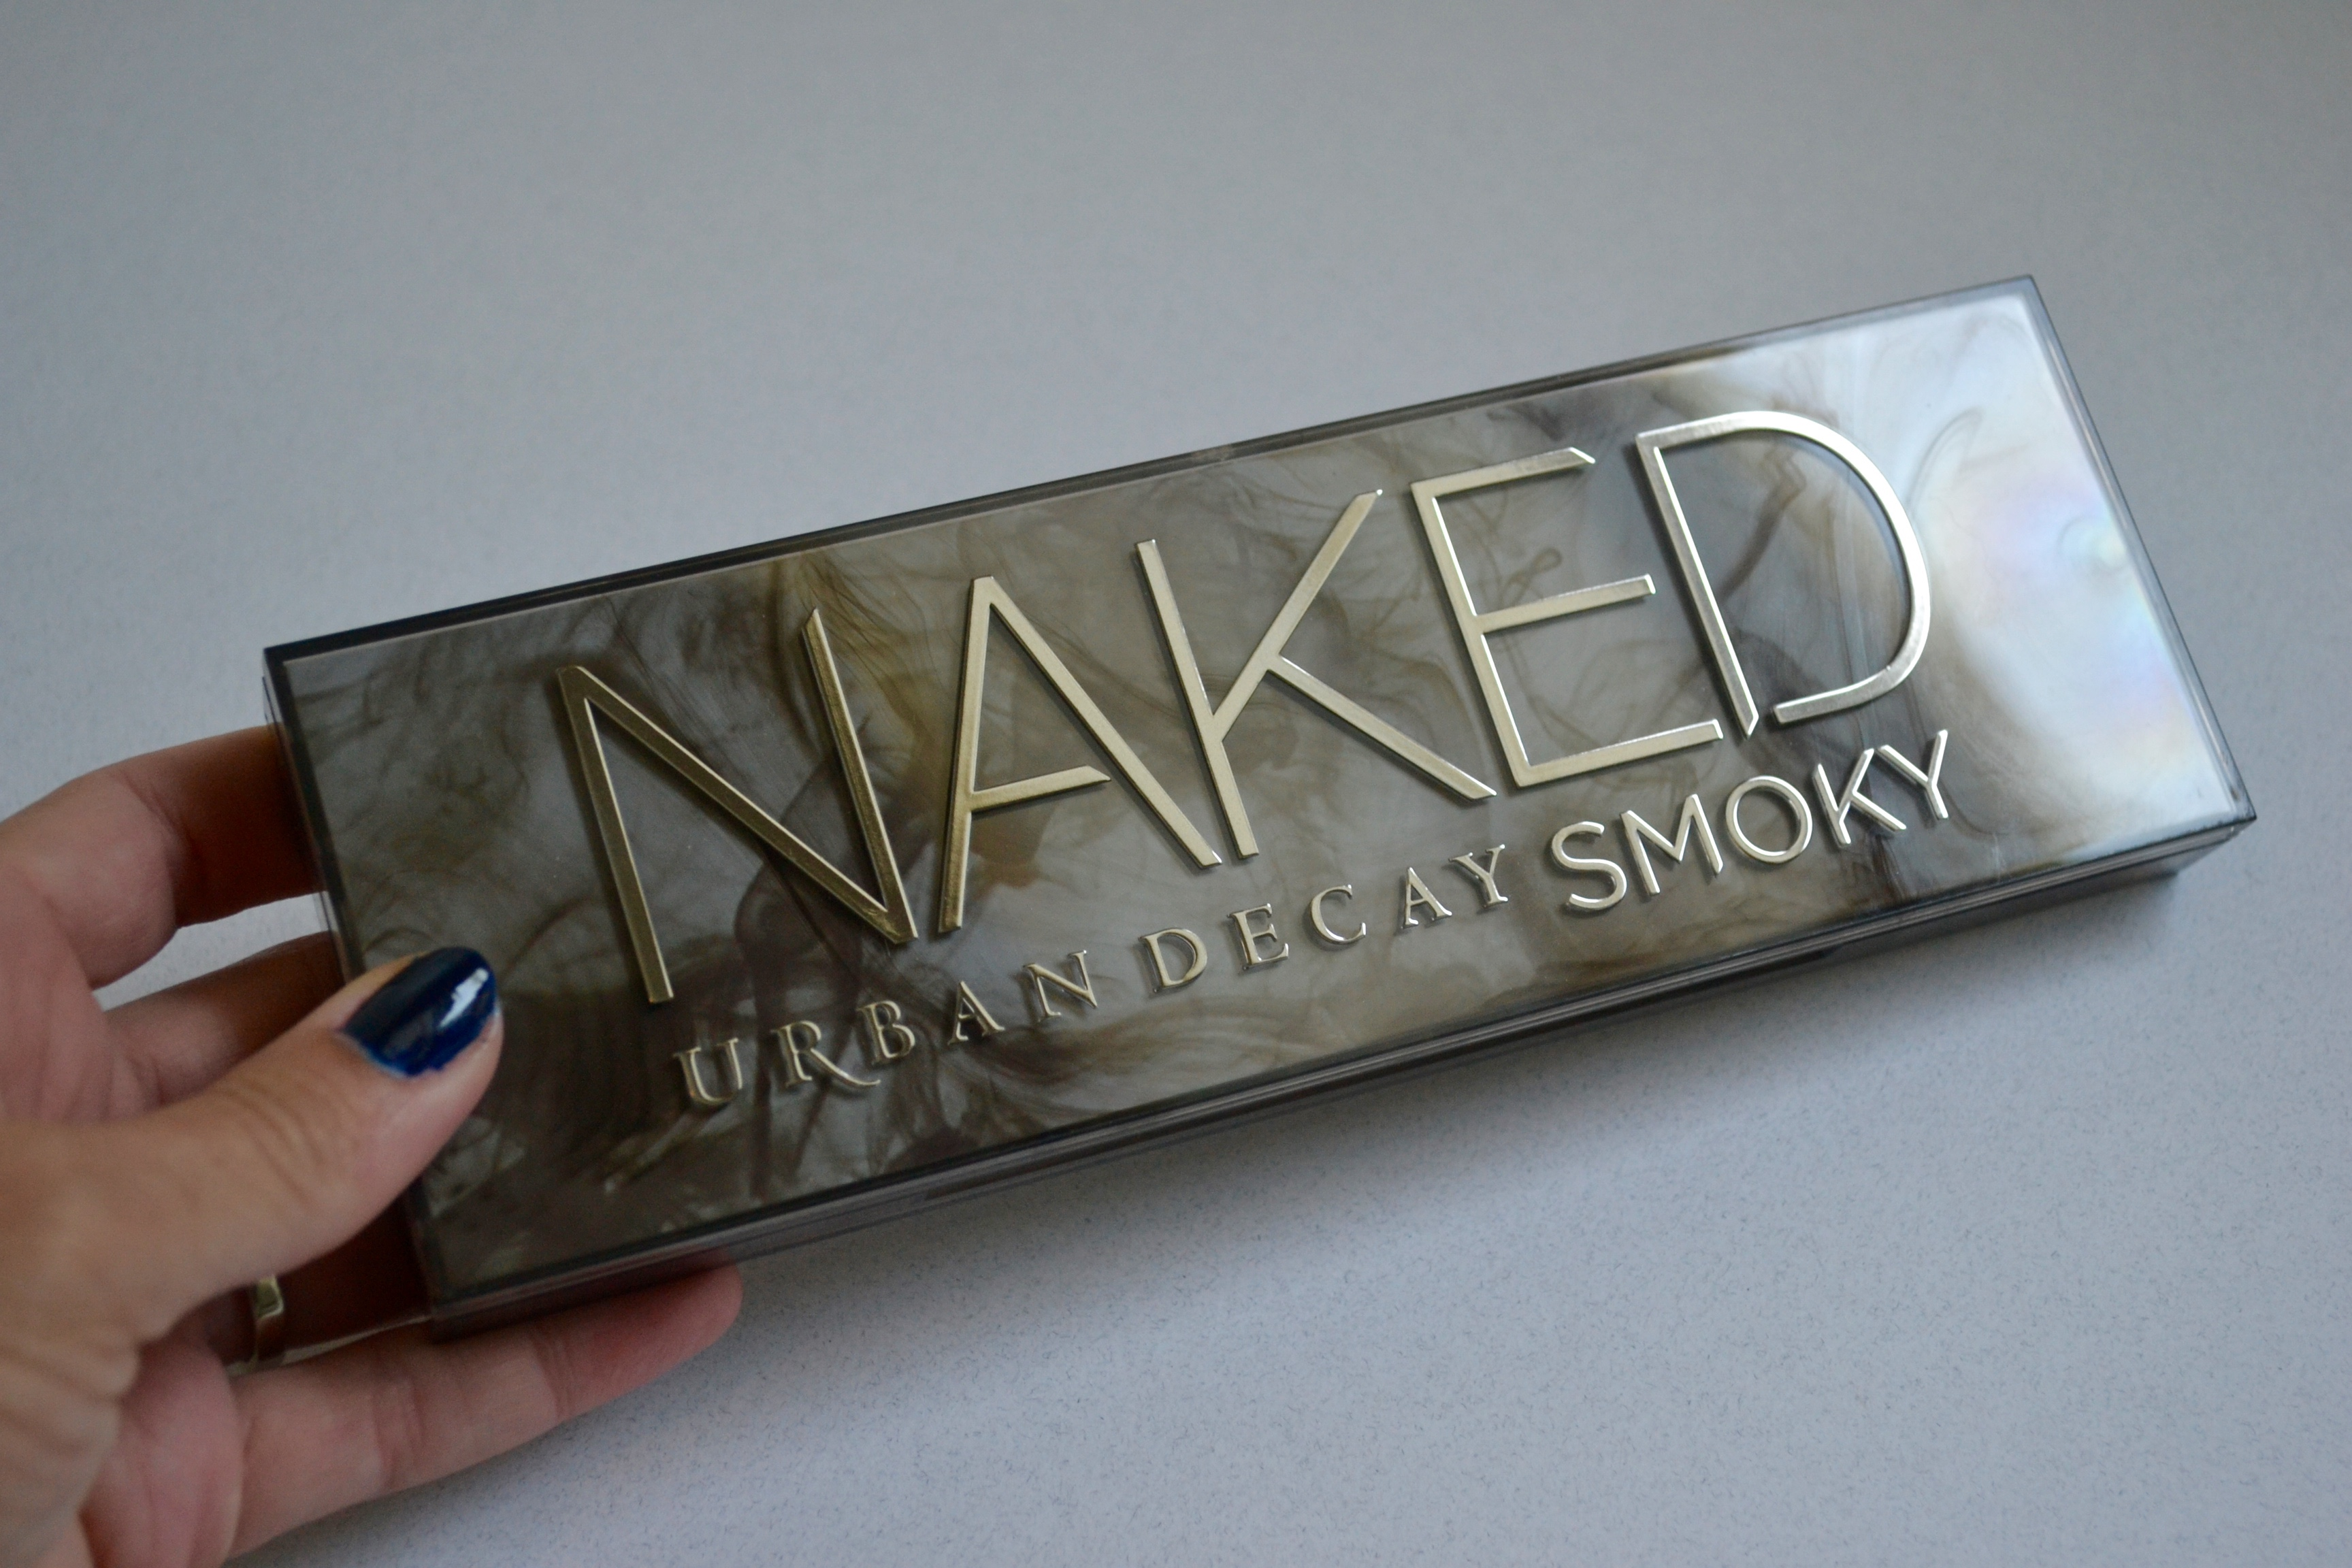 inside look at the Urban Decay Naked Smoky palette